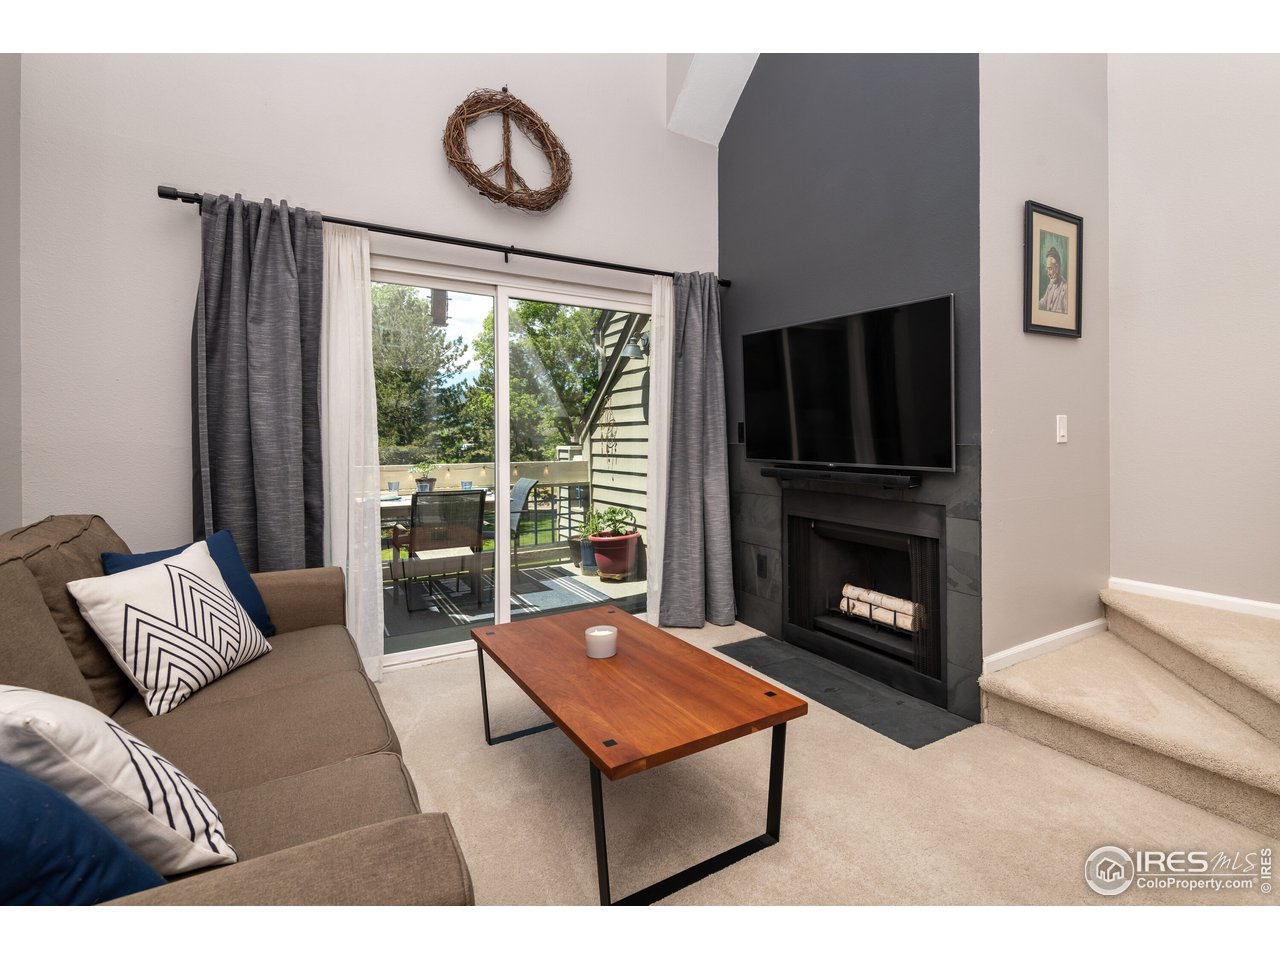 Living room to delightful outdoor space